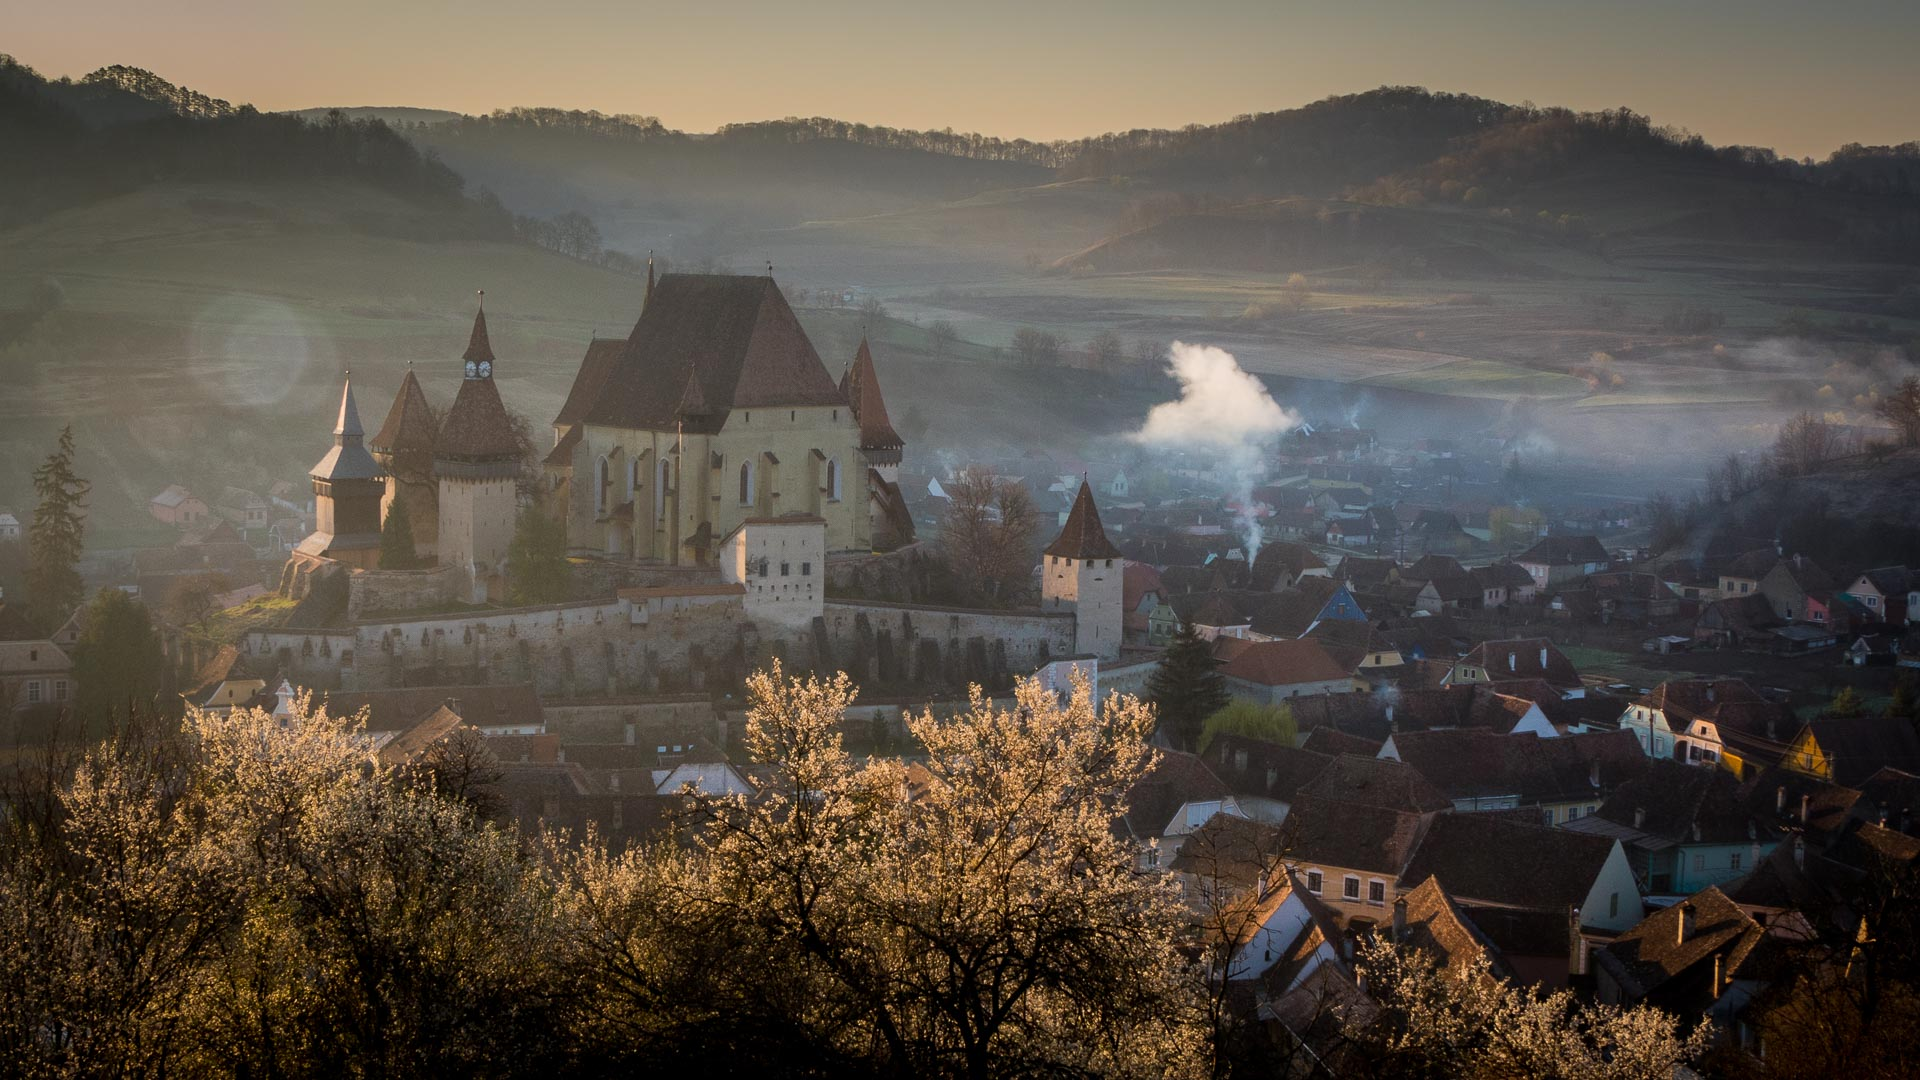 Captivating photos of Romania in spring - Biertan Fortified church